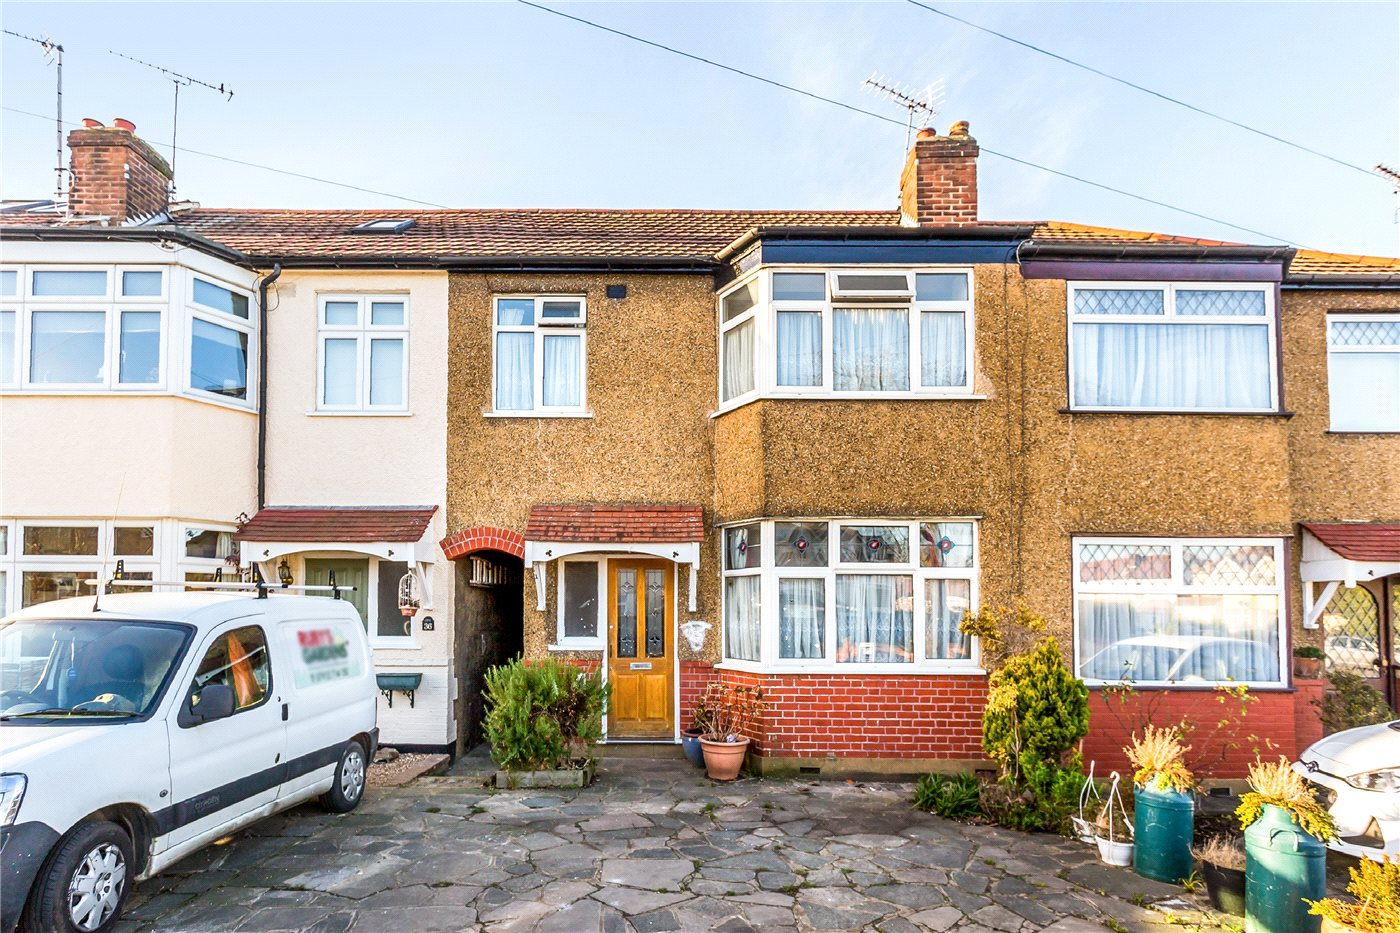 3 Bedrooms Terraced House for sale in Inverness Avenue, Enfield, EN1